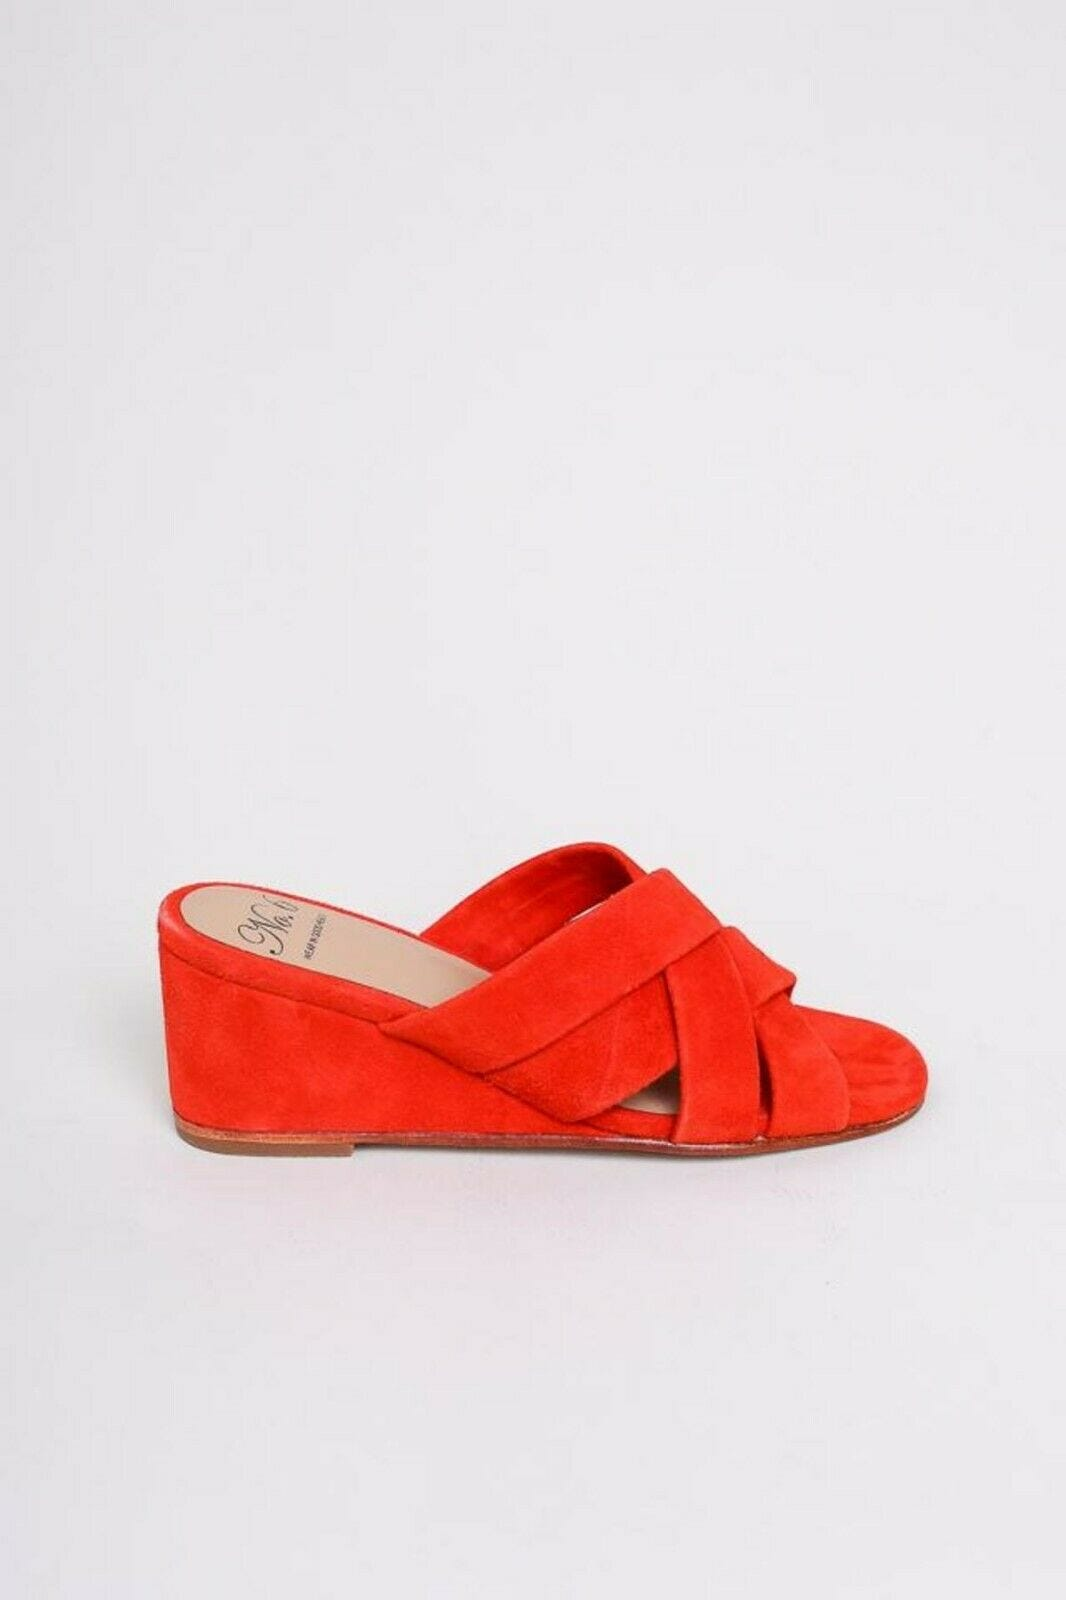 5f7339c9819 Everlane Wedge Sandal - Affordable